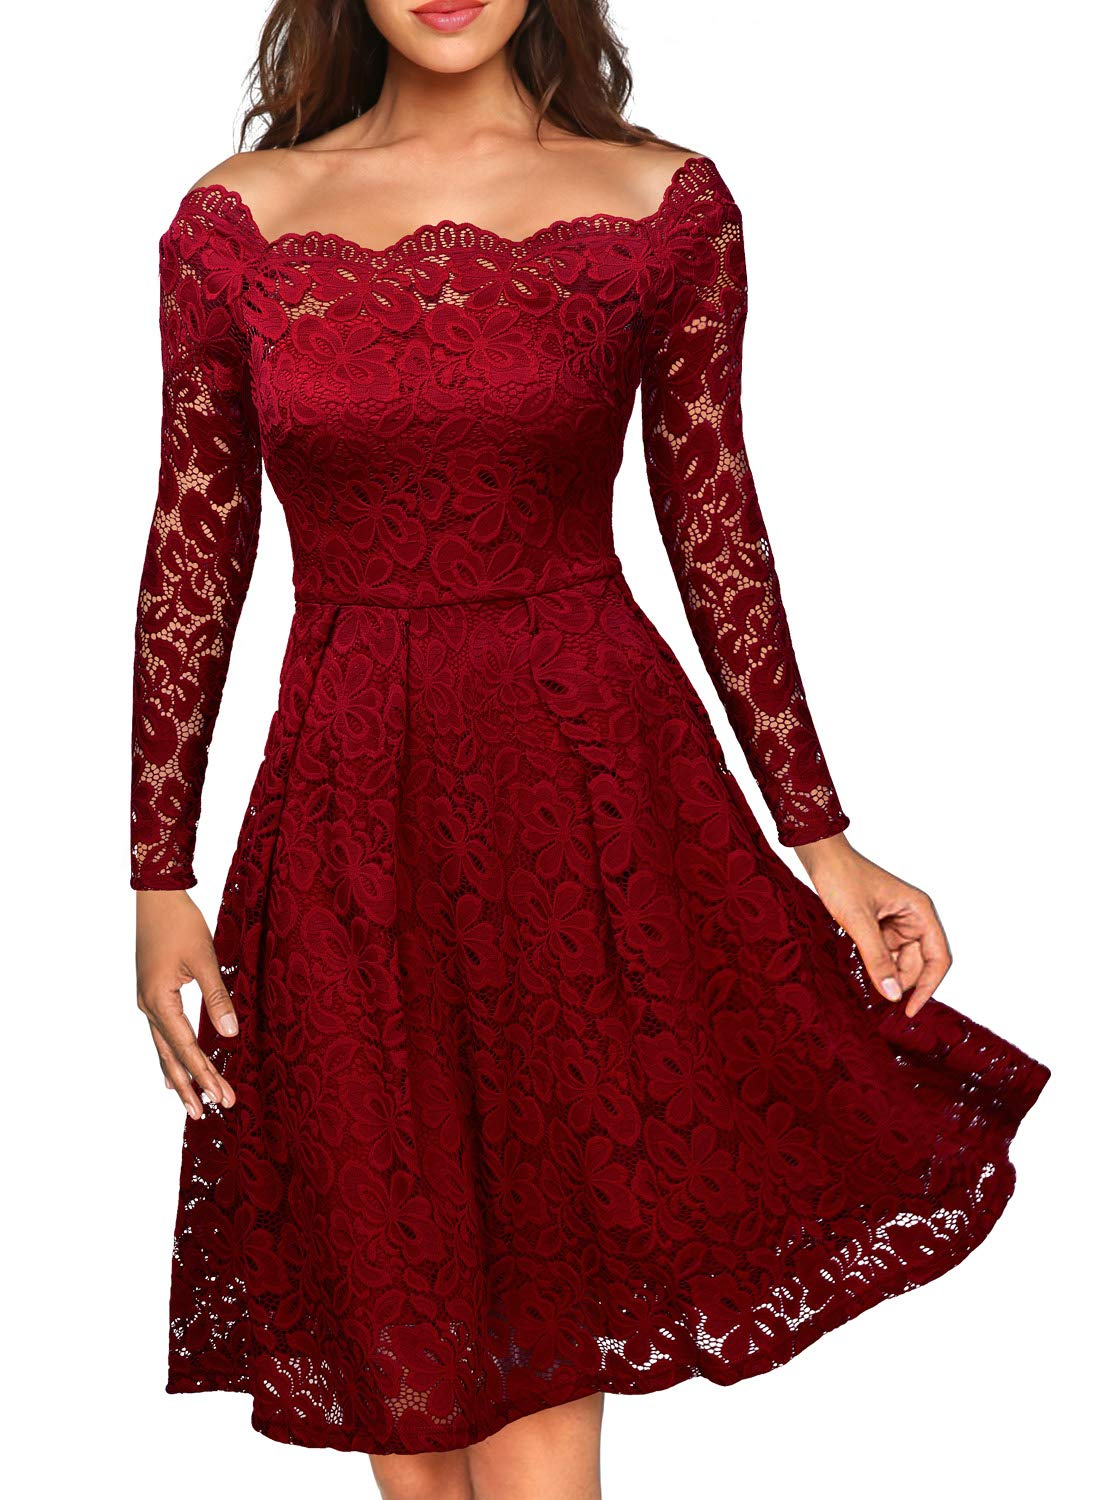 8ecfae675f884 MISSMAY Women's Vintage Floral Lace Long Sleeve Boat Neck Cocktail Party  Swing Dress product image